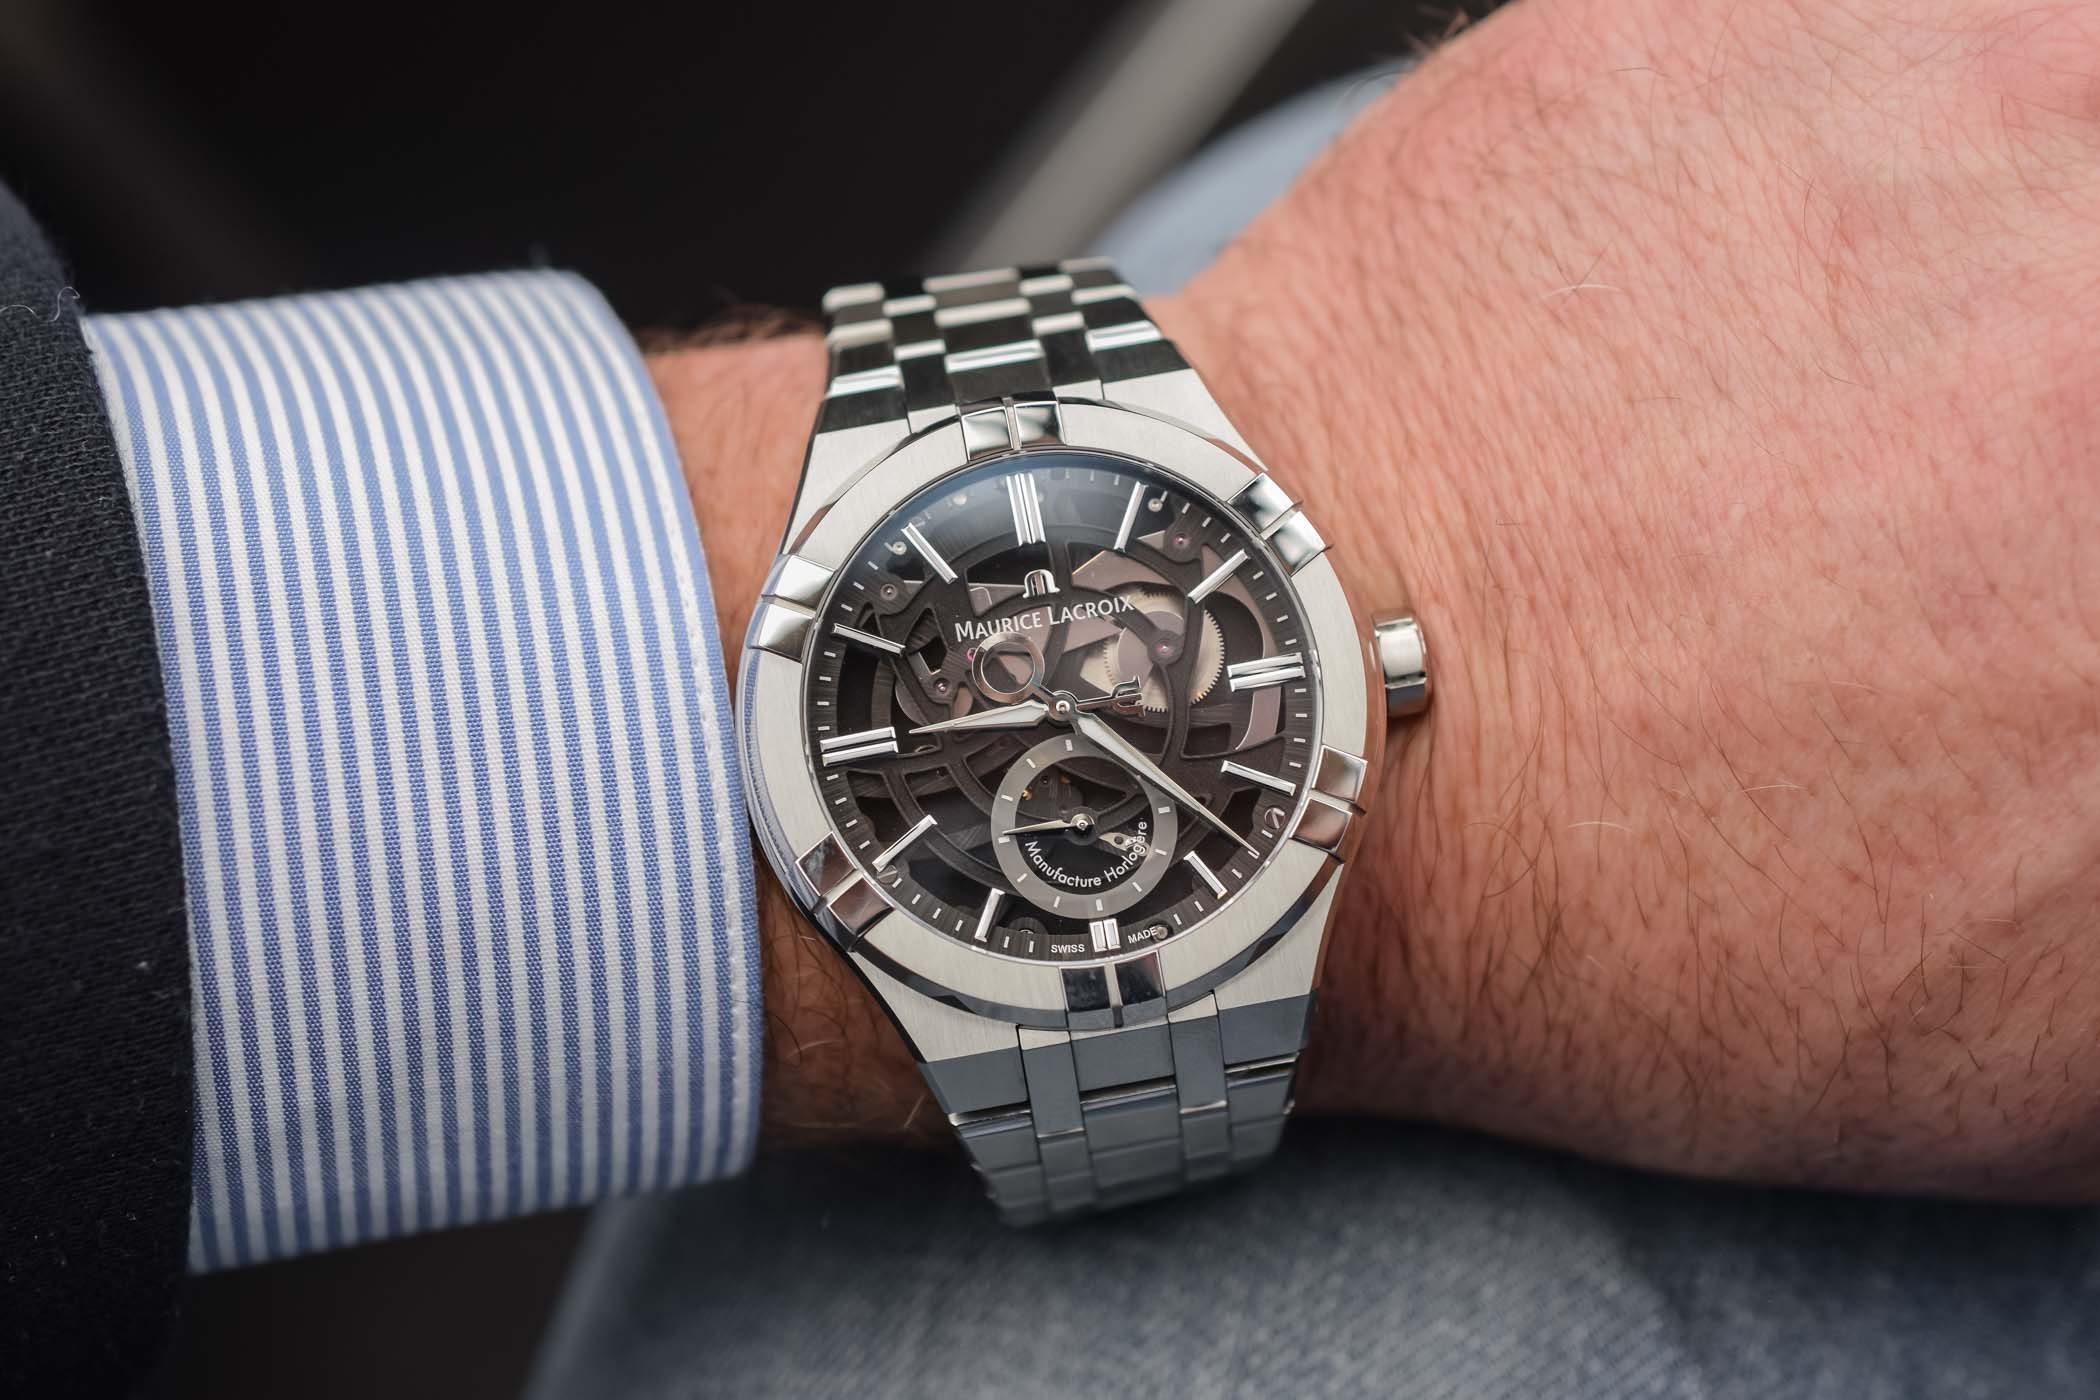 VIDEO - Discovering the Maurice Lacroix Aikon Mercury with Patented Free-Hand Display